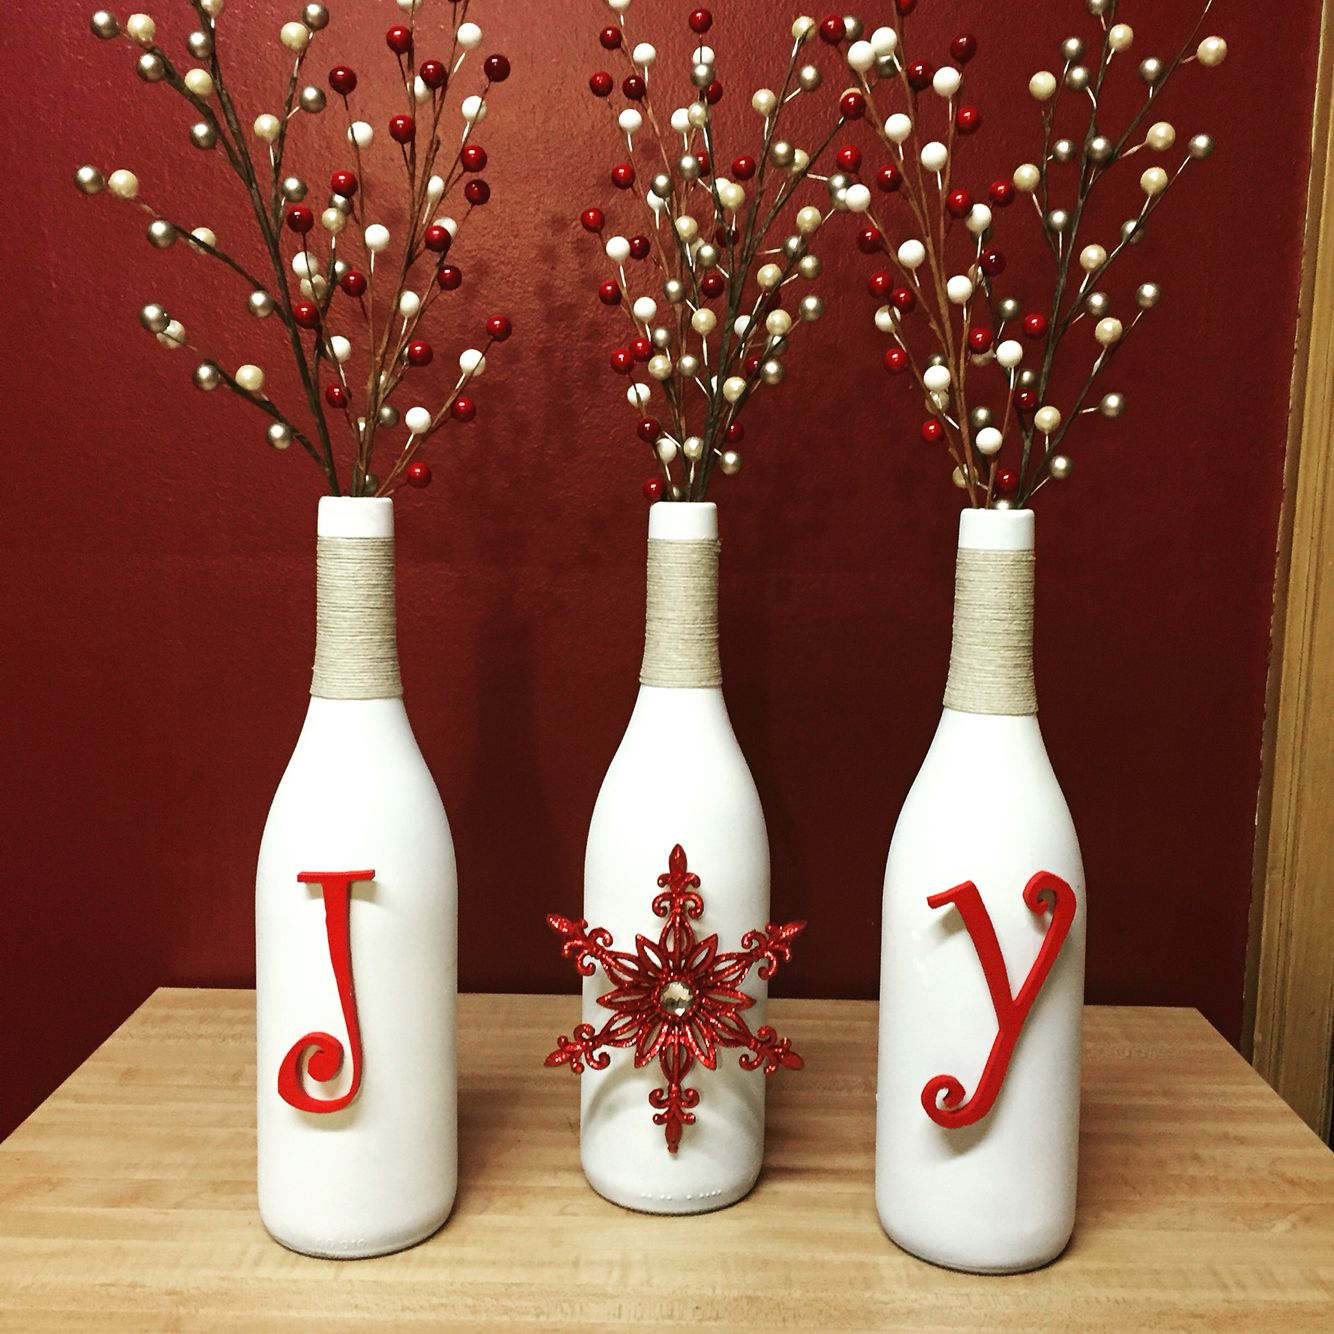 Wine Bottle Crafting Archives Page 9 Of 10 Crafting To Go Wine Bottle Crafts Christmas Diy Bottle Crafts Christmas Centerpieces Diy